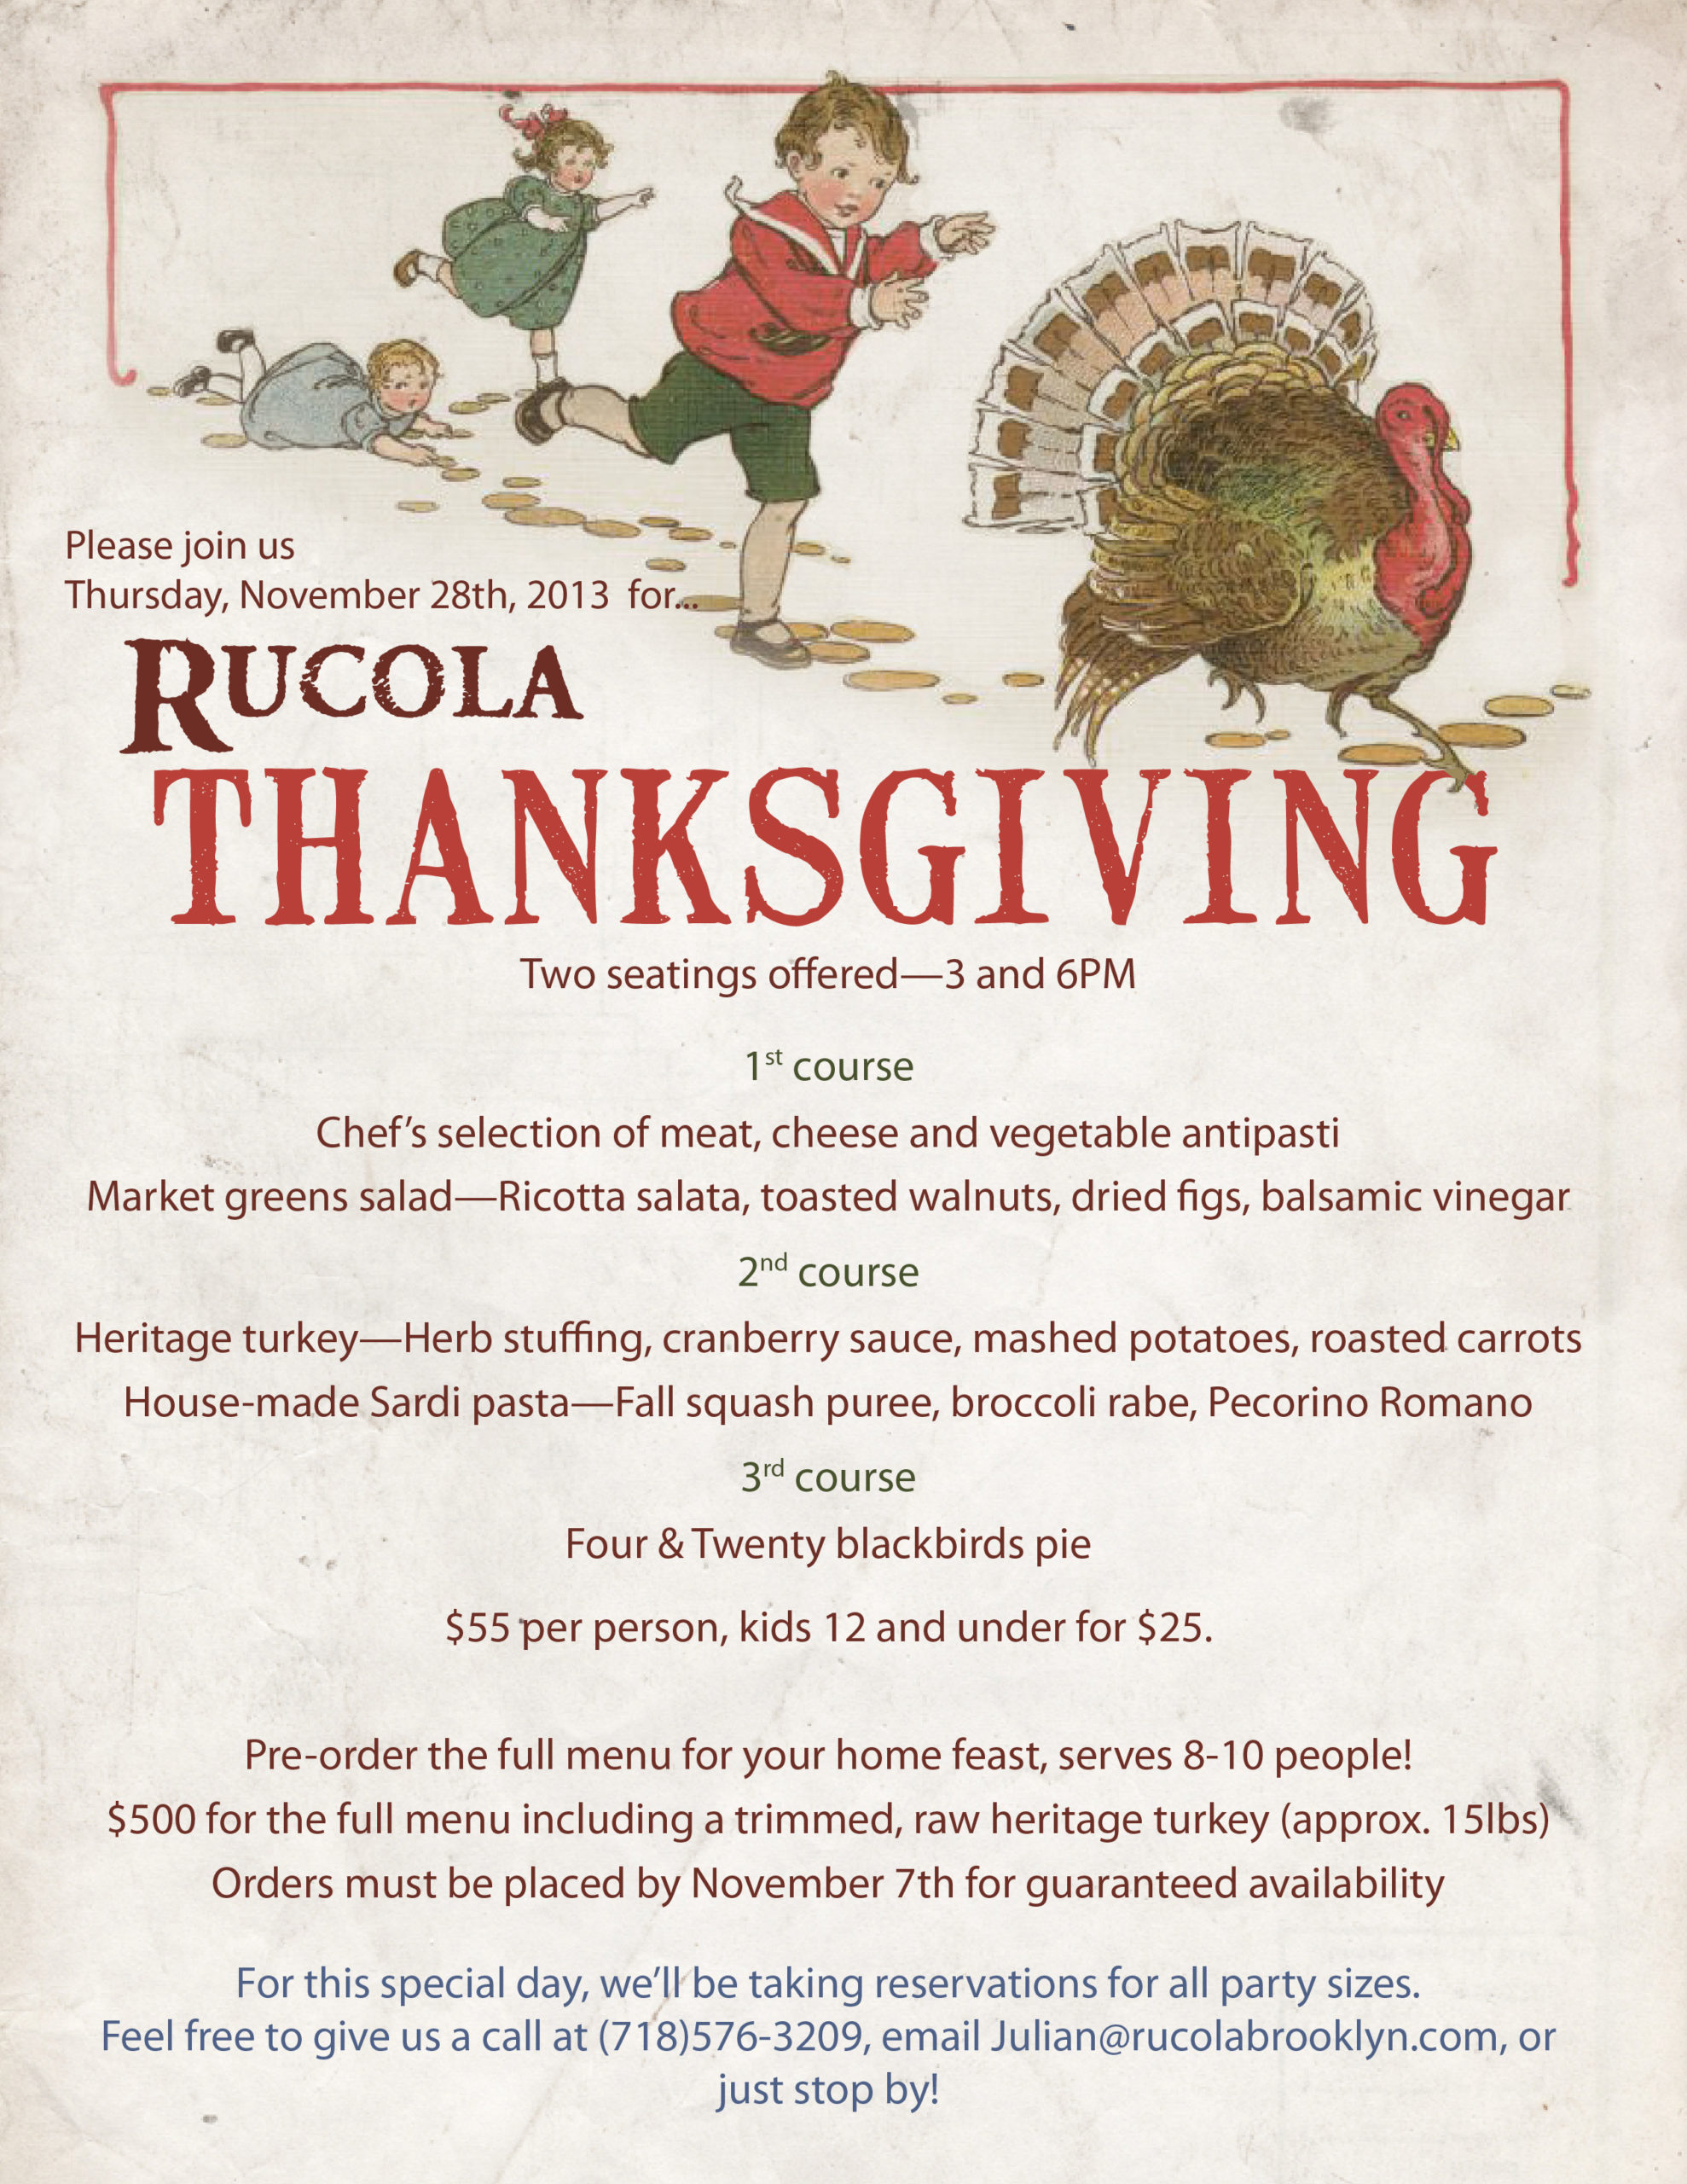 Rucola Thanksgiving 2013 flyer